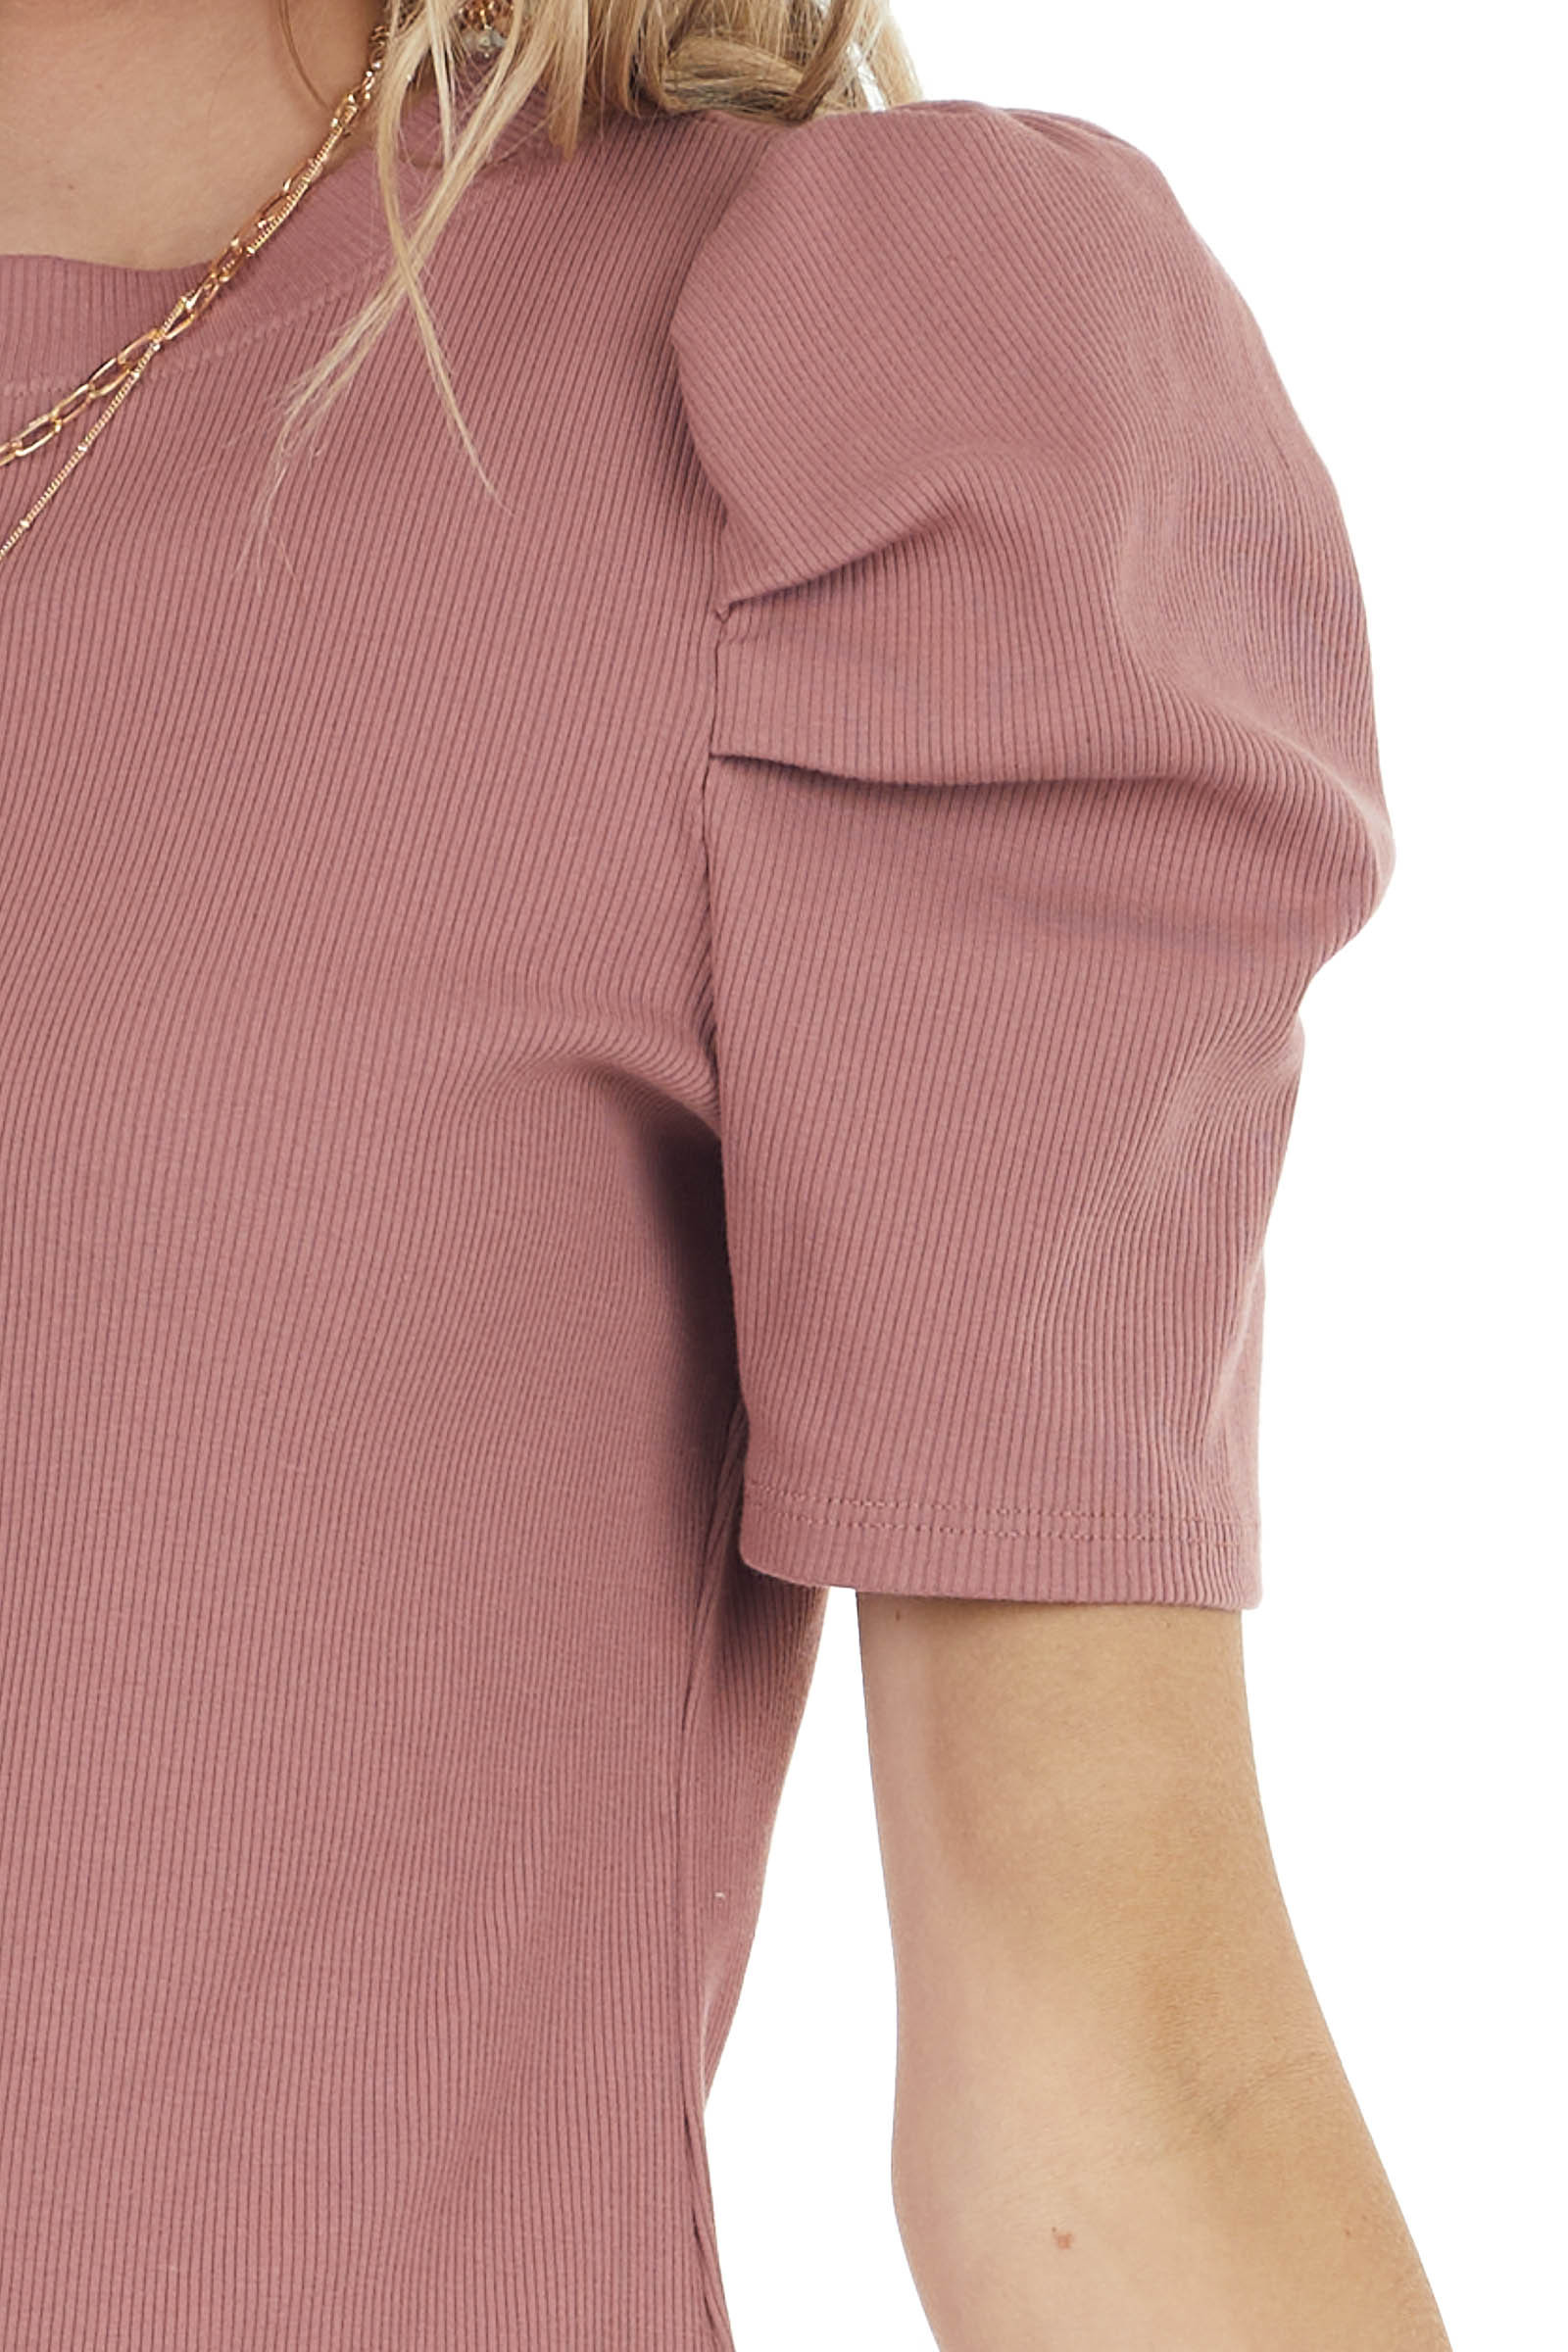 Dusty Rose Crew Neck Ribbed Knit Top with Short Puff Sleeves